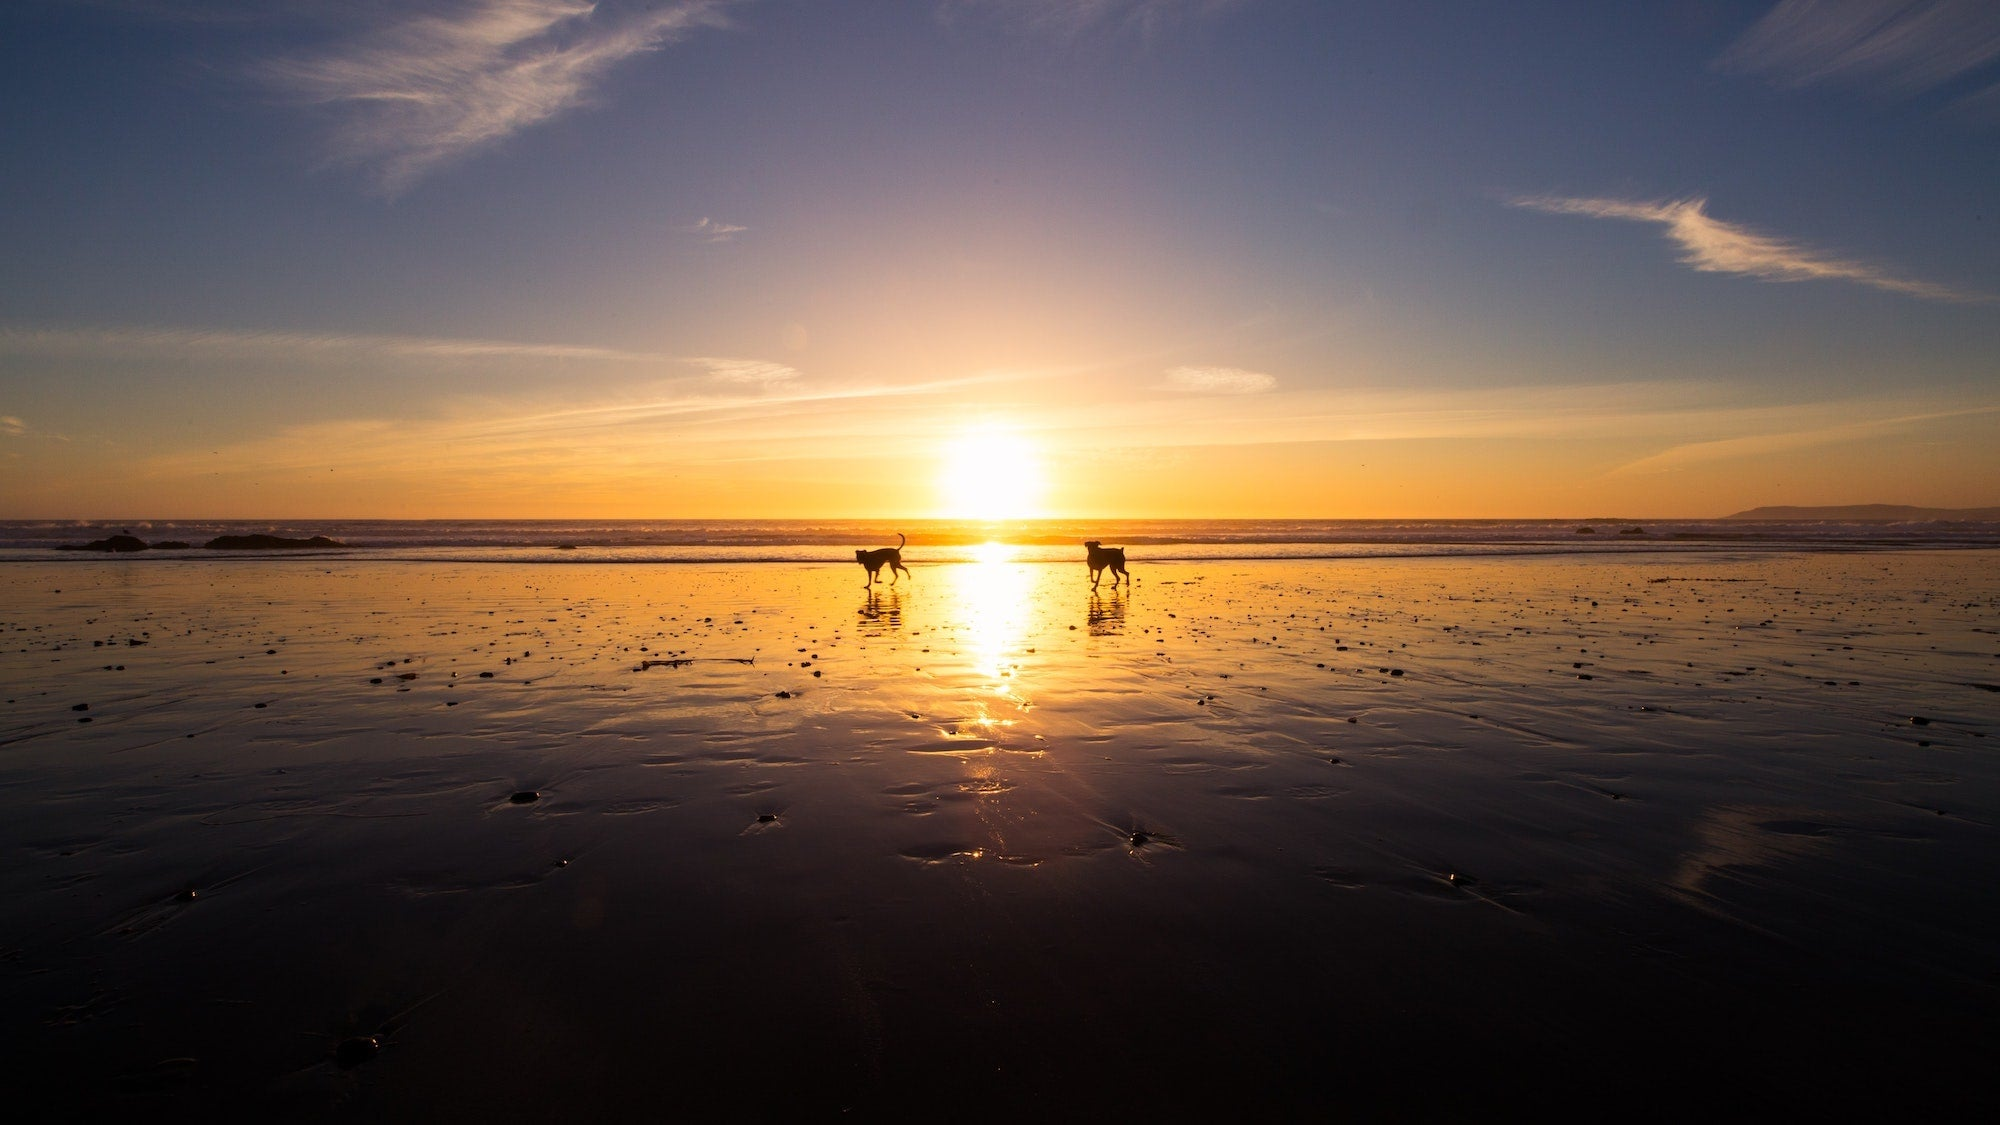 Two dogs playing on the beach at sunset